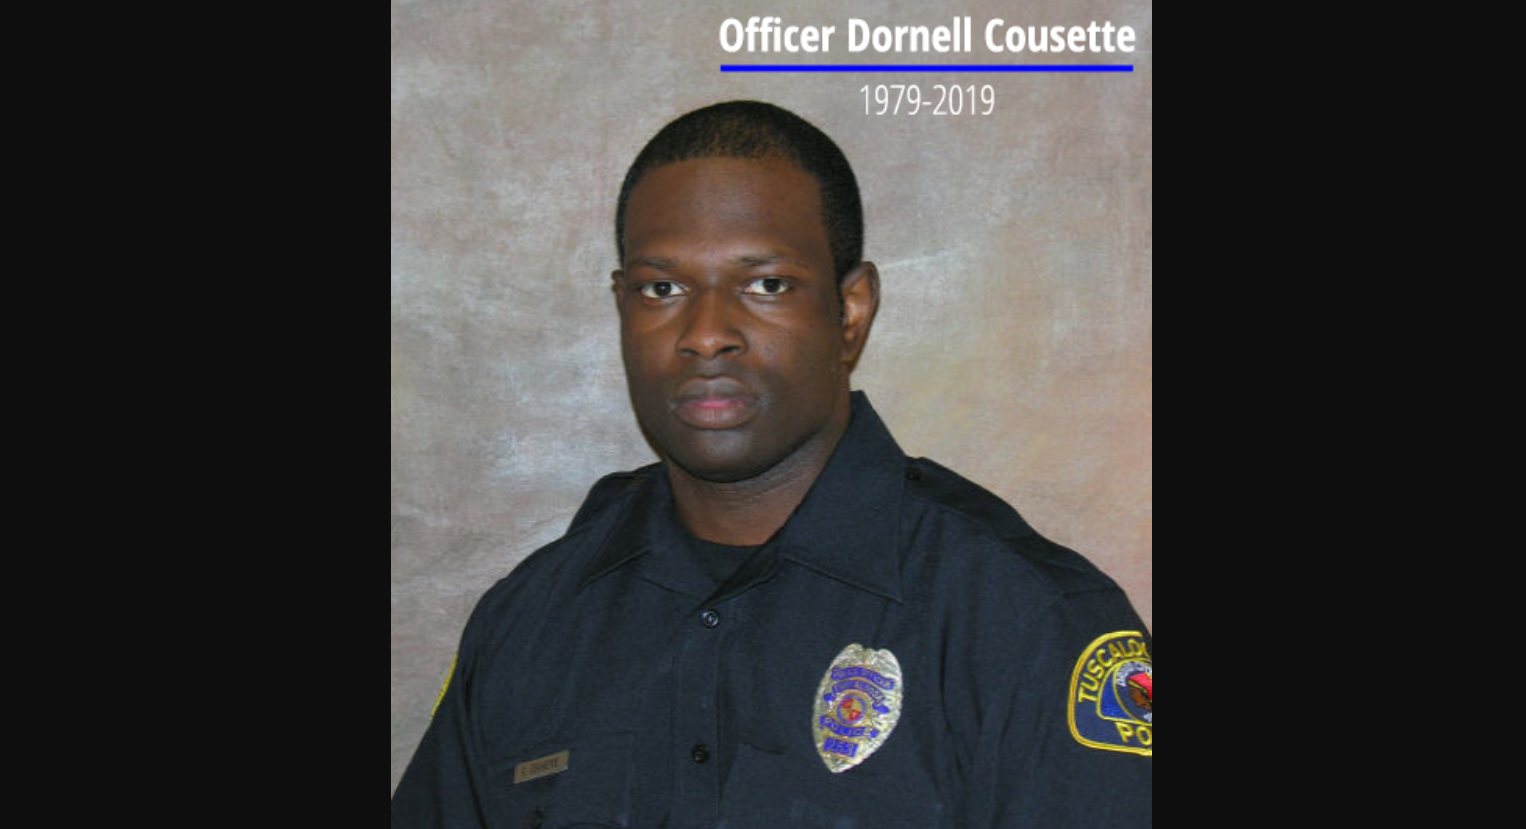 United States Attorney responds to death of Tuscaloosa Police Officer Dornell Cousette